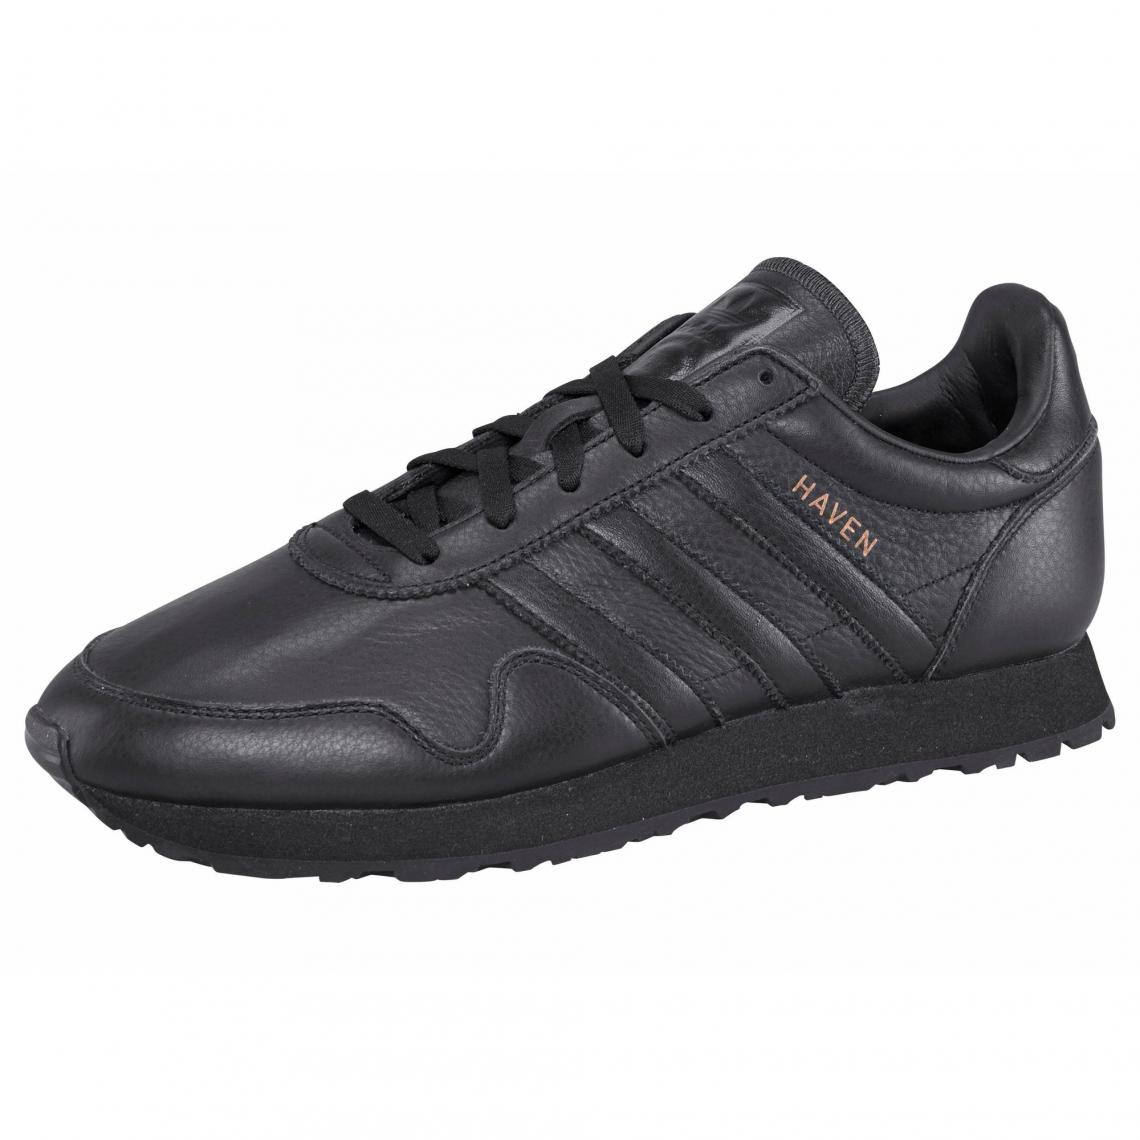 feee39a08c280 adidas Originals Haven sneakers homme - Noir Adidas Originals Homme